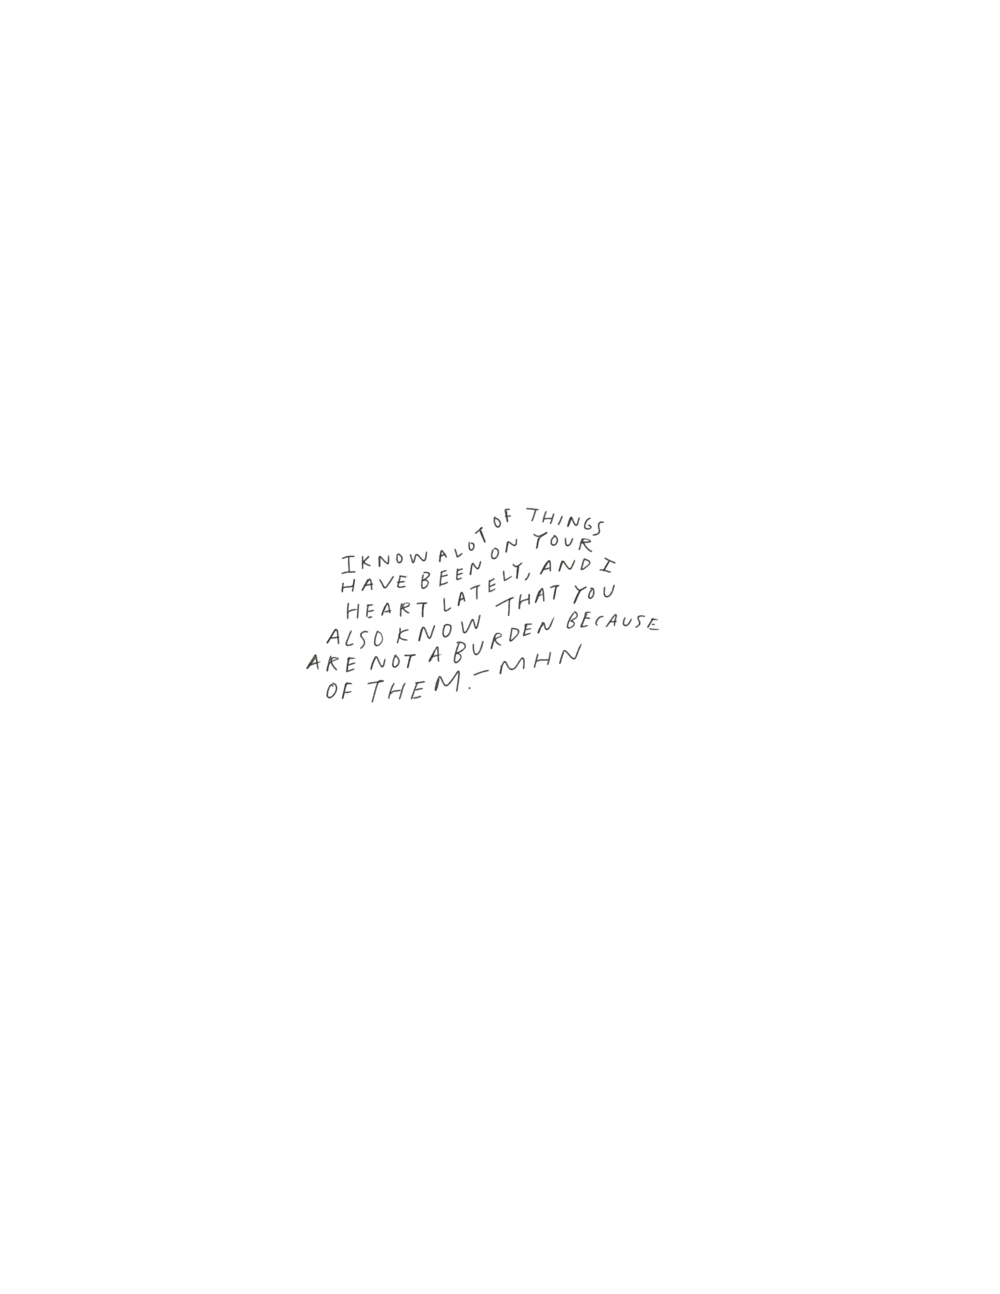 20190307(6).png